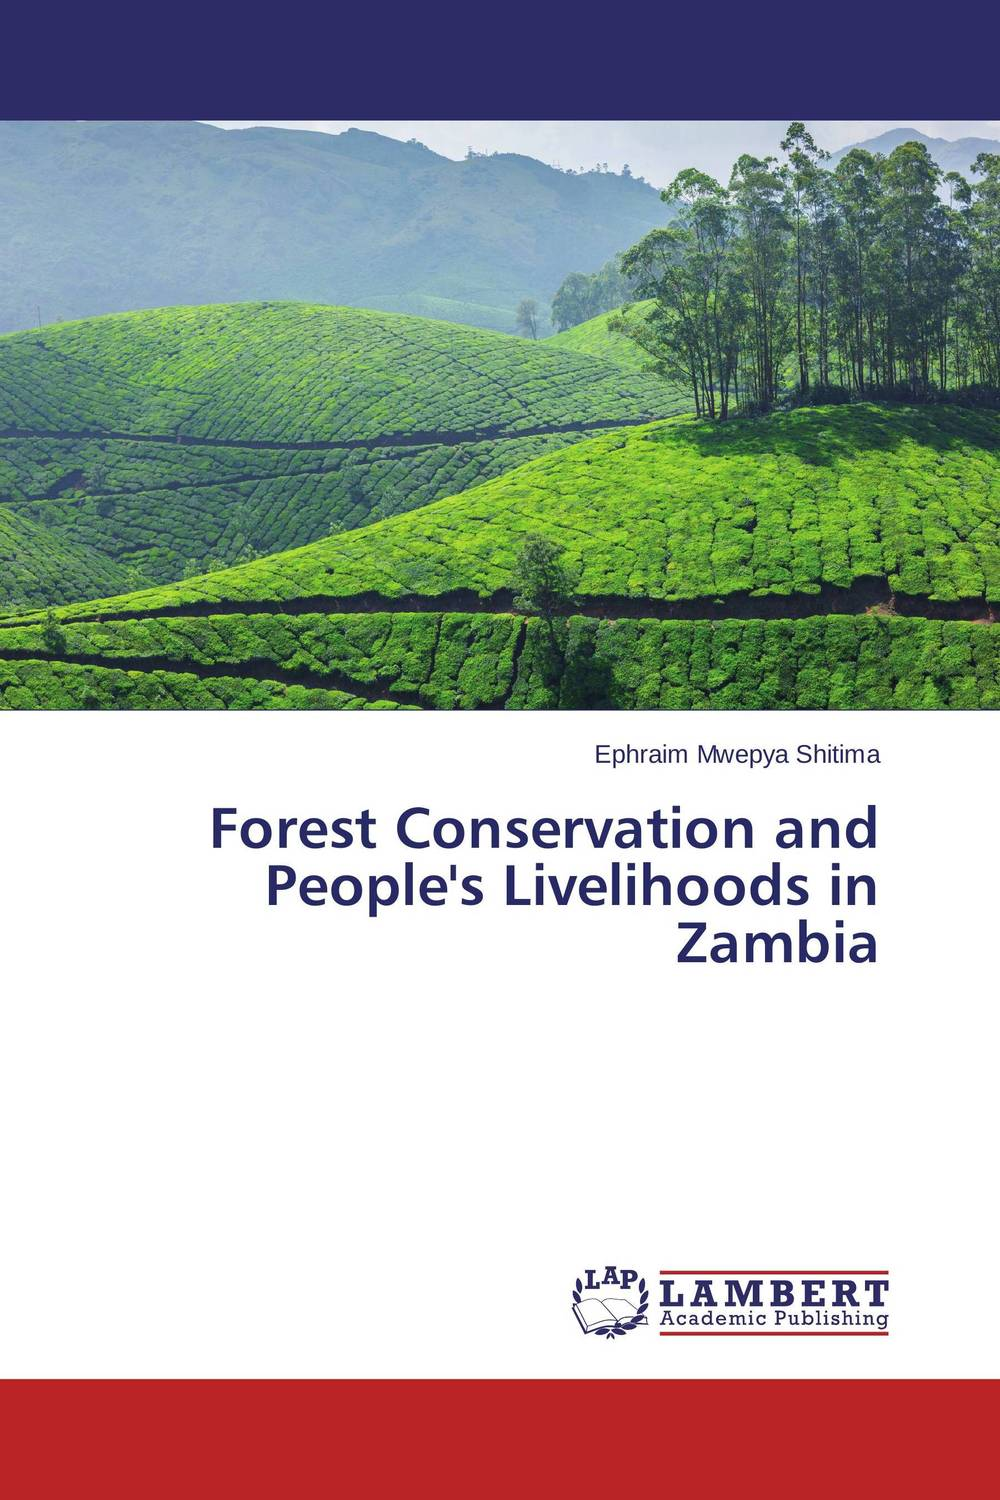 Forest Conservation and People's Livelihoods in Zambia conflicts in forest resources usage and management